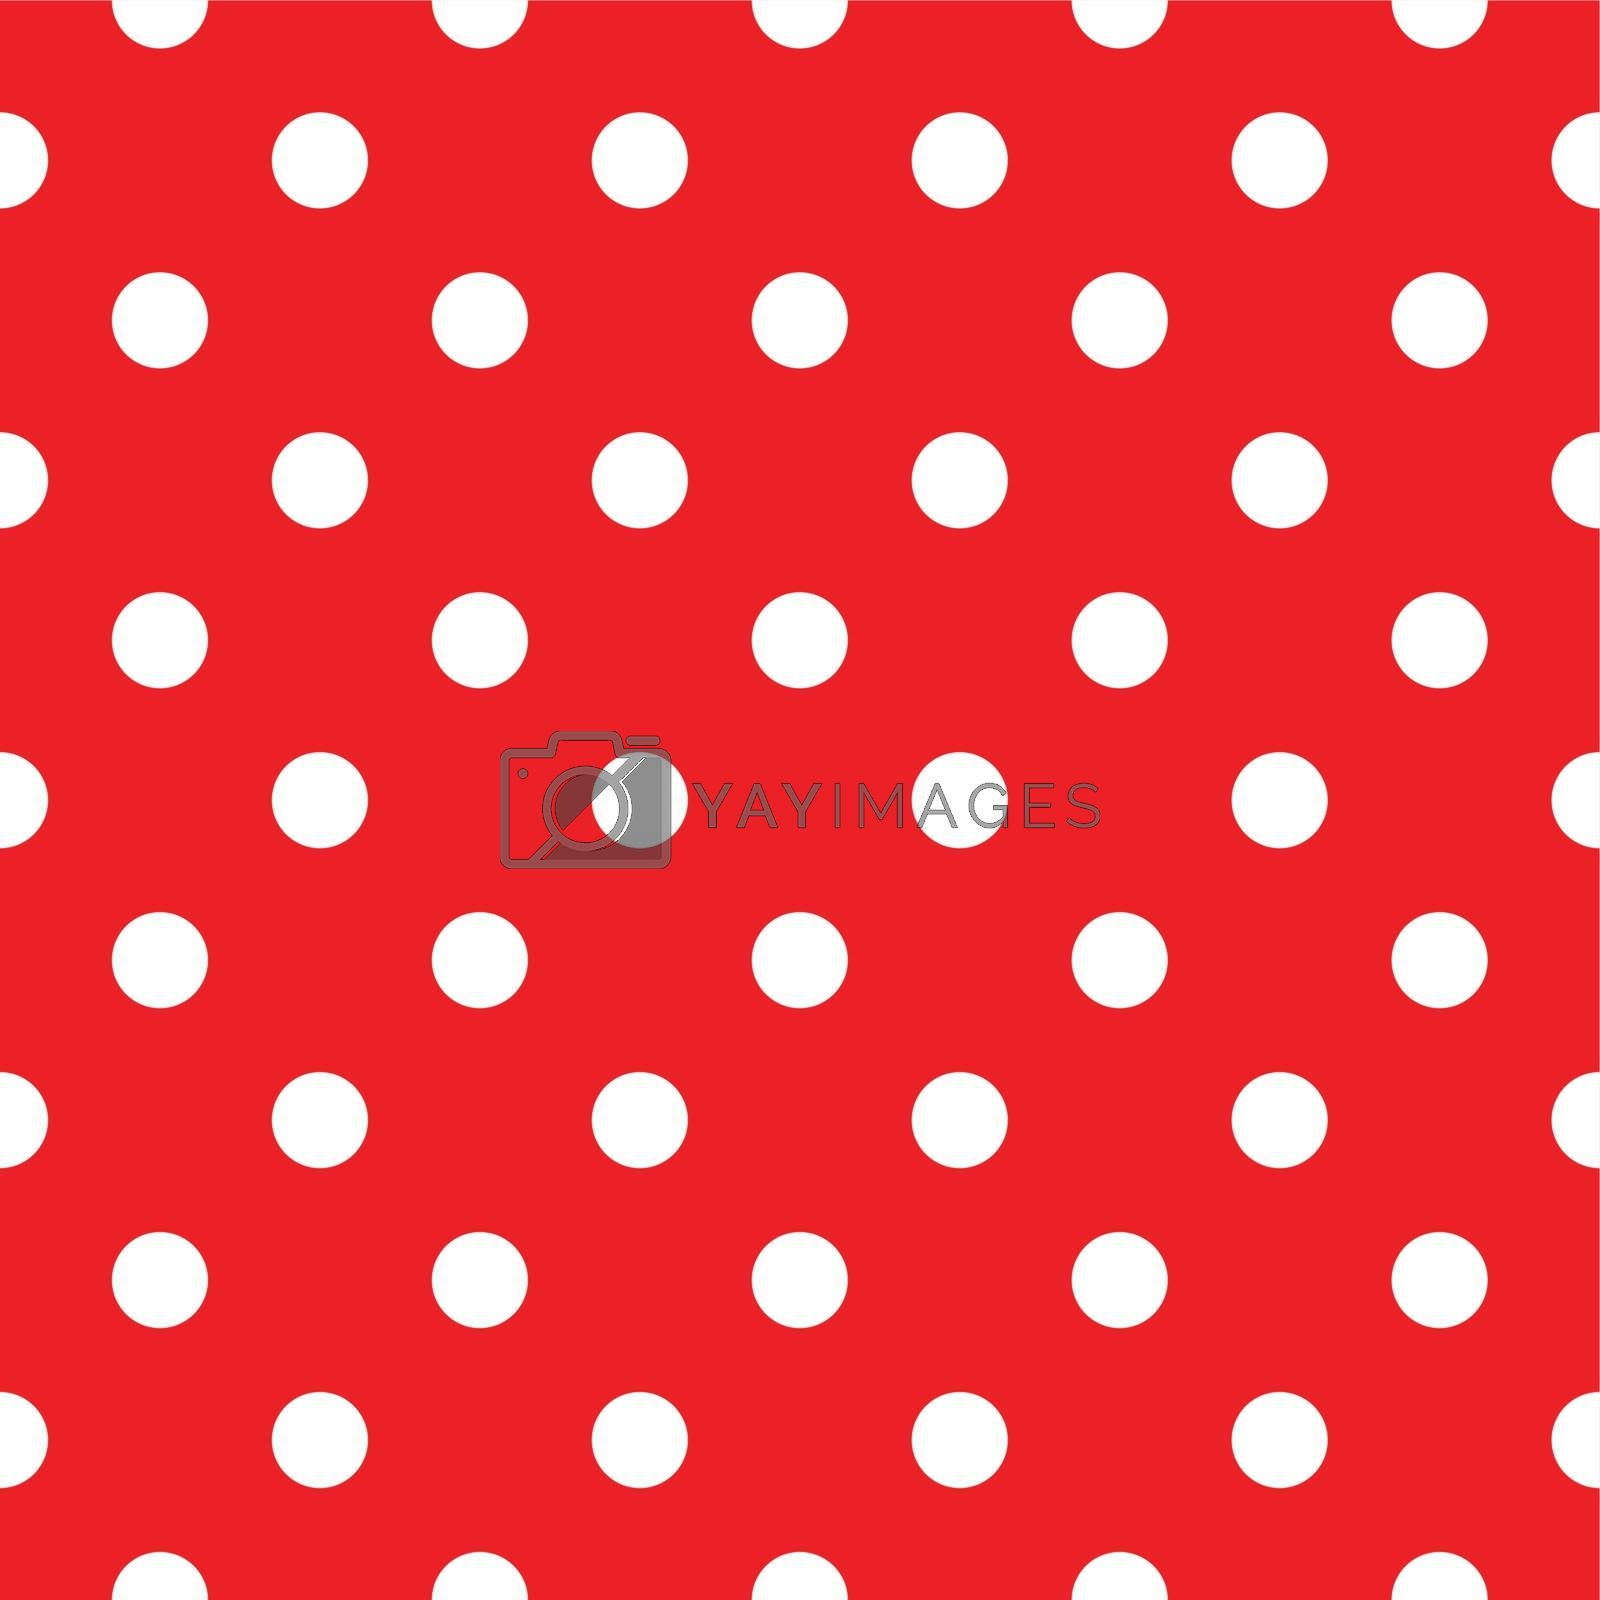 Red polka dot seamless pattern design by Lordalea